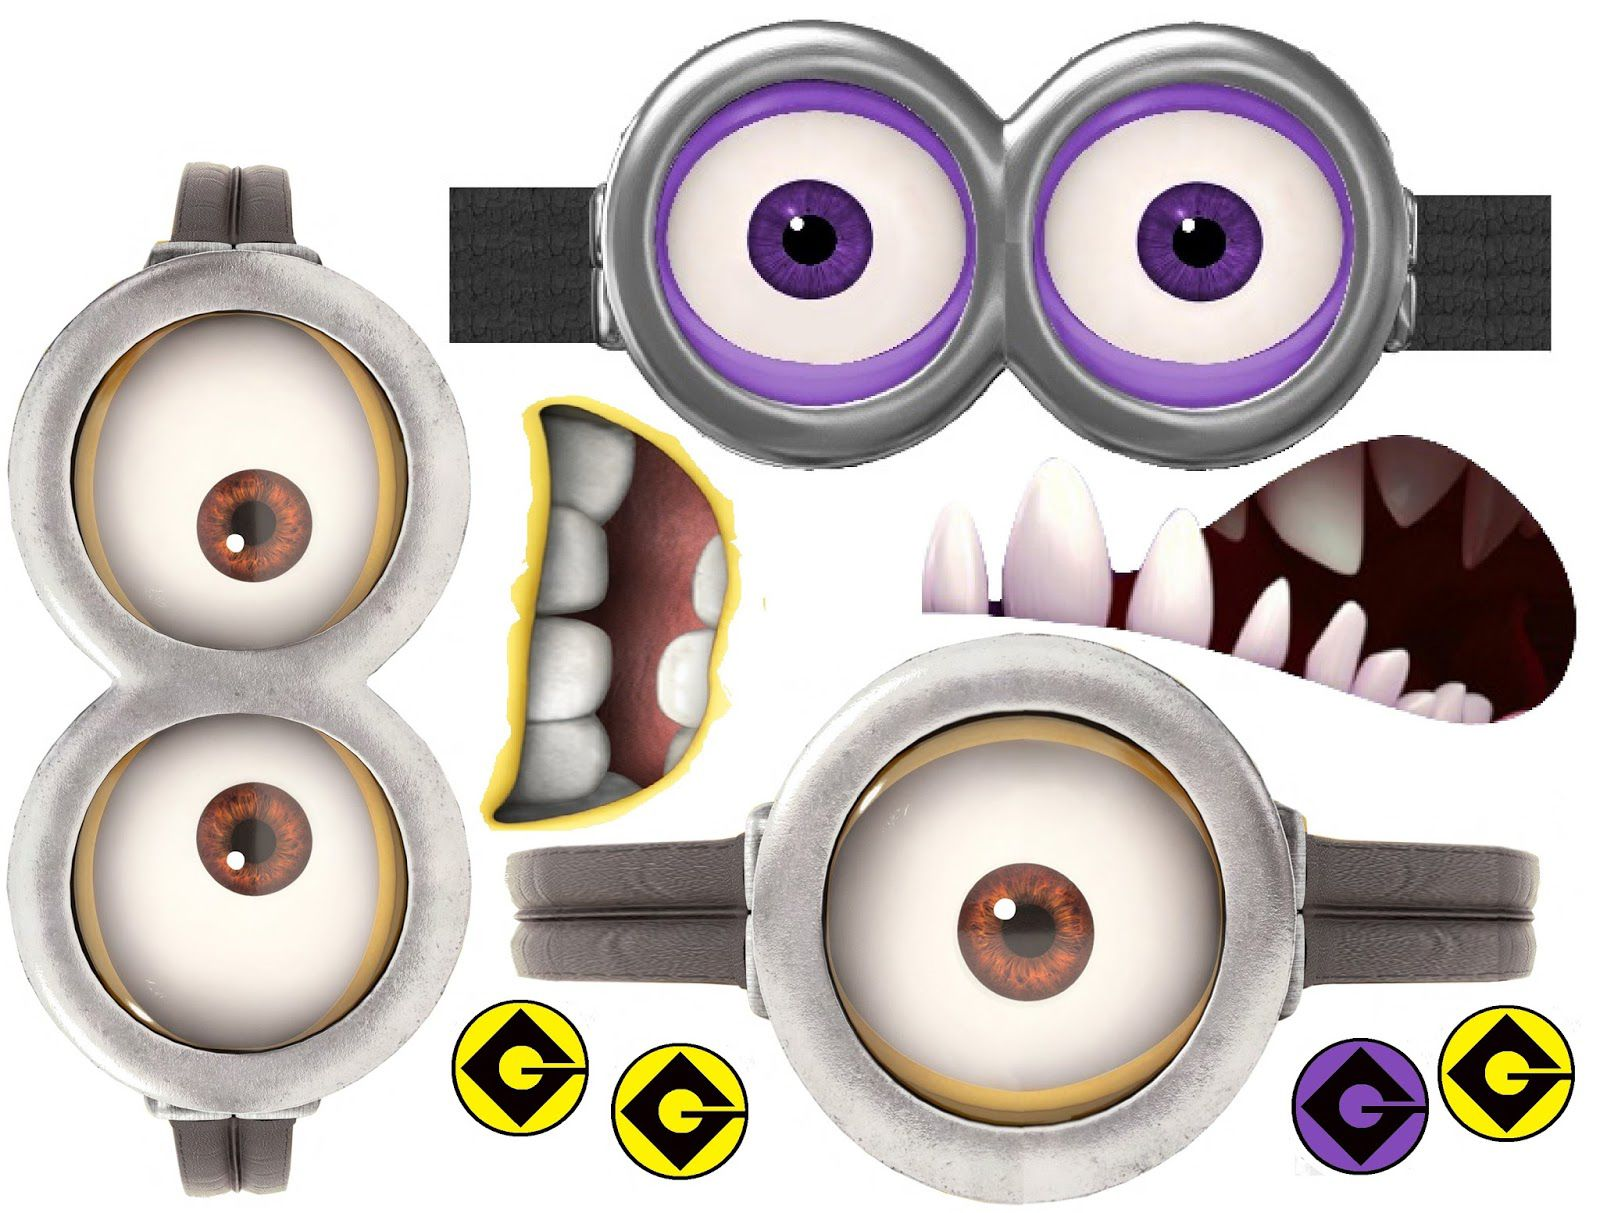 It is an image of Geeky Minion Eye Printable